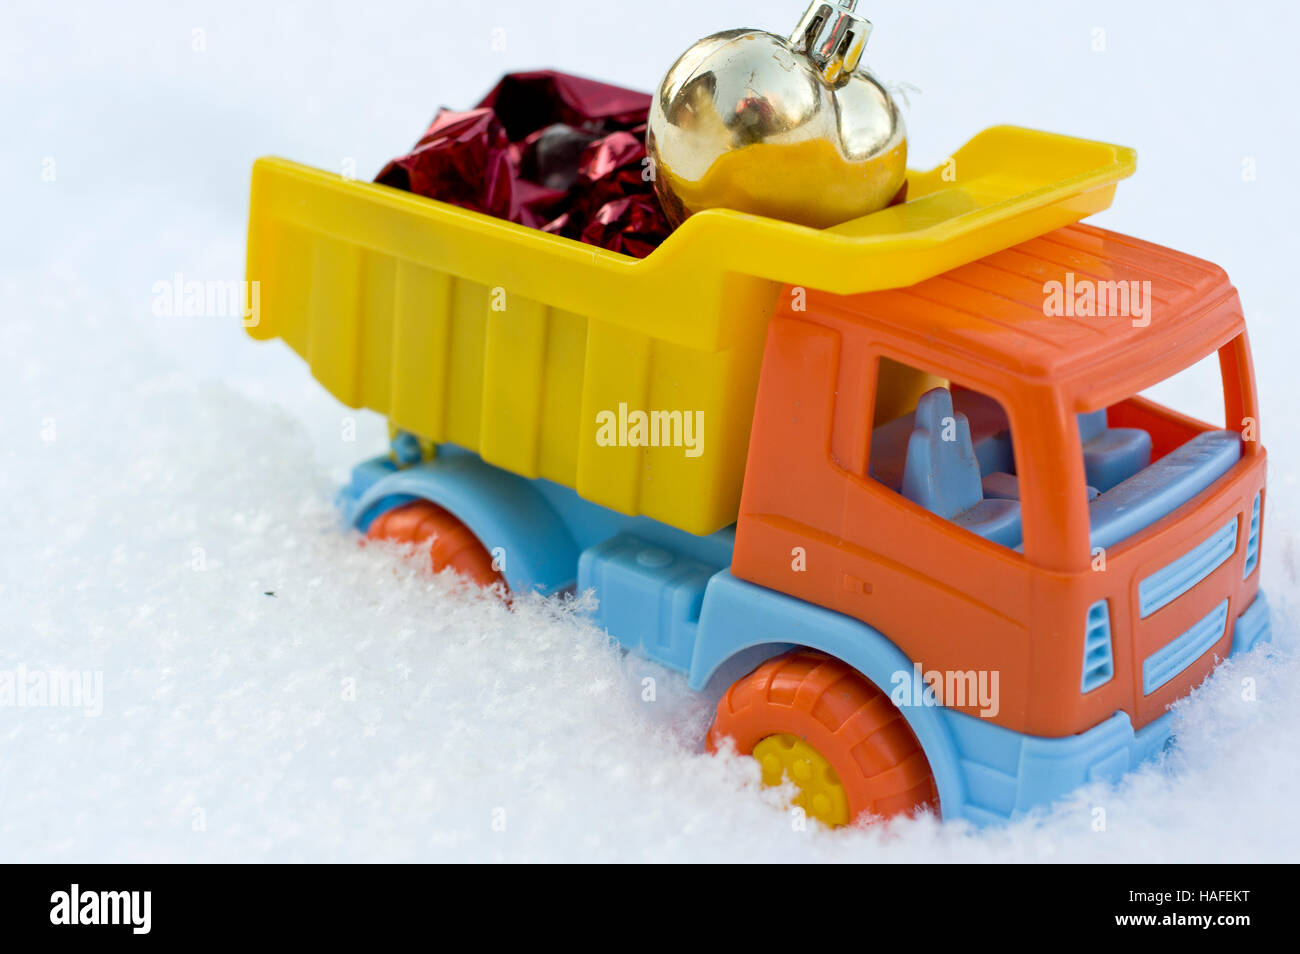 Christmas gifts delivery Stock Photo: 126959948 - Alamy